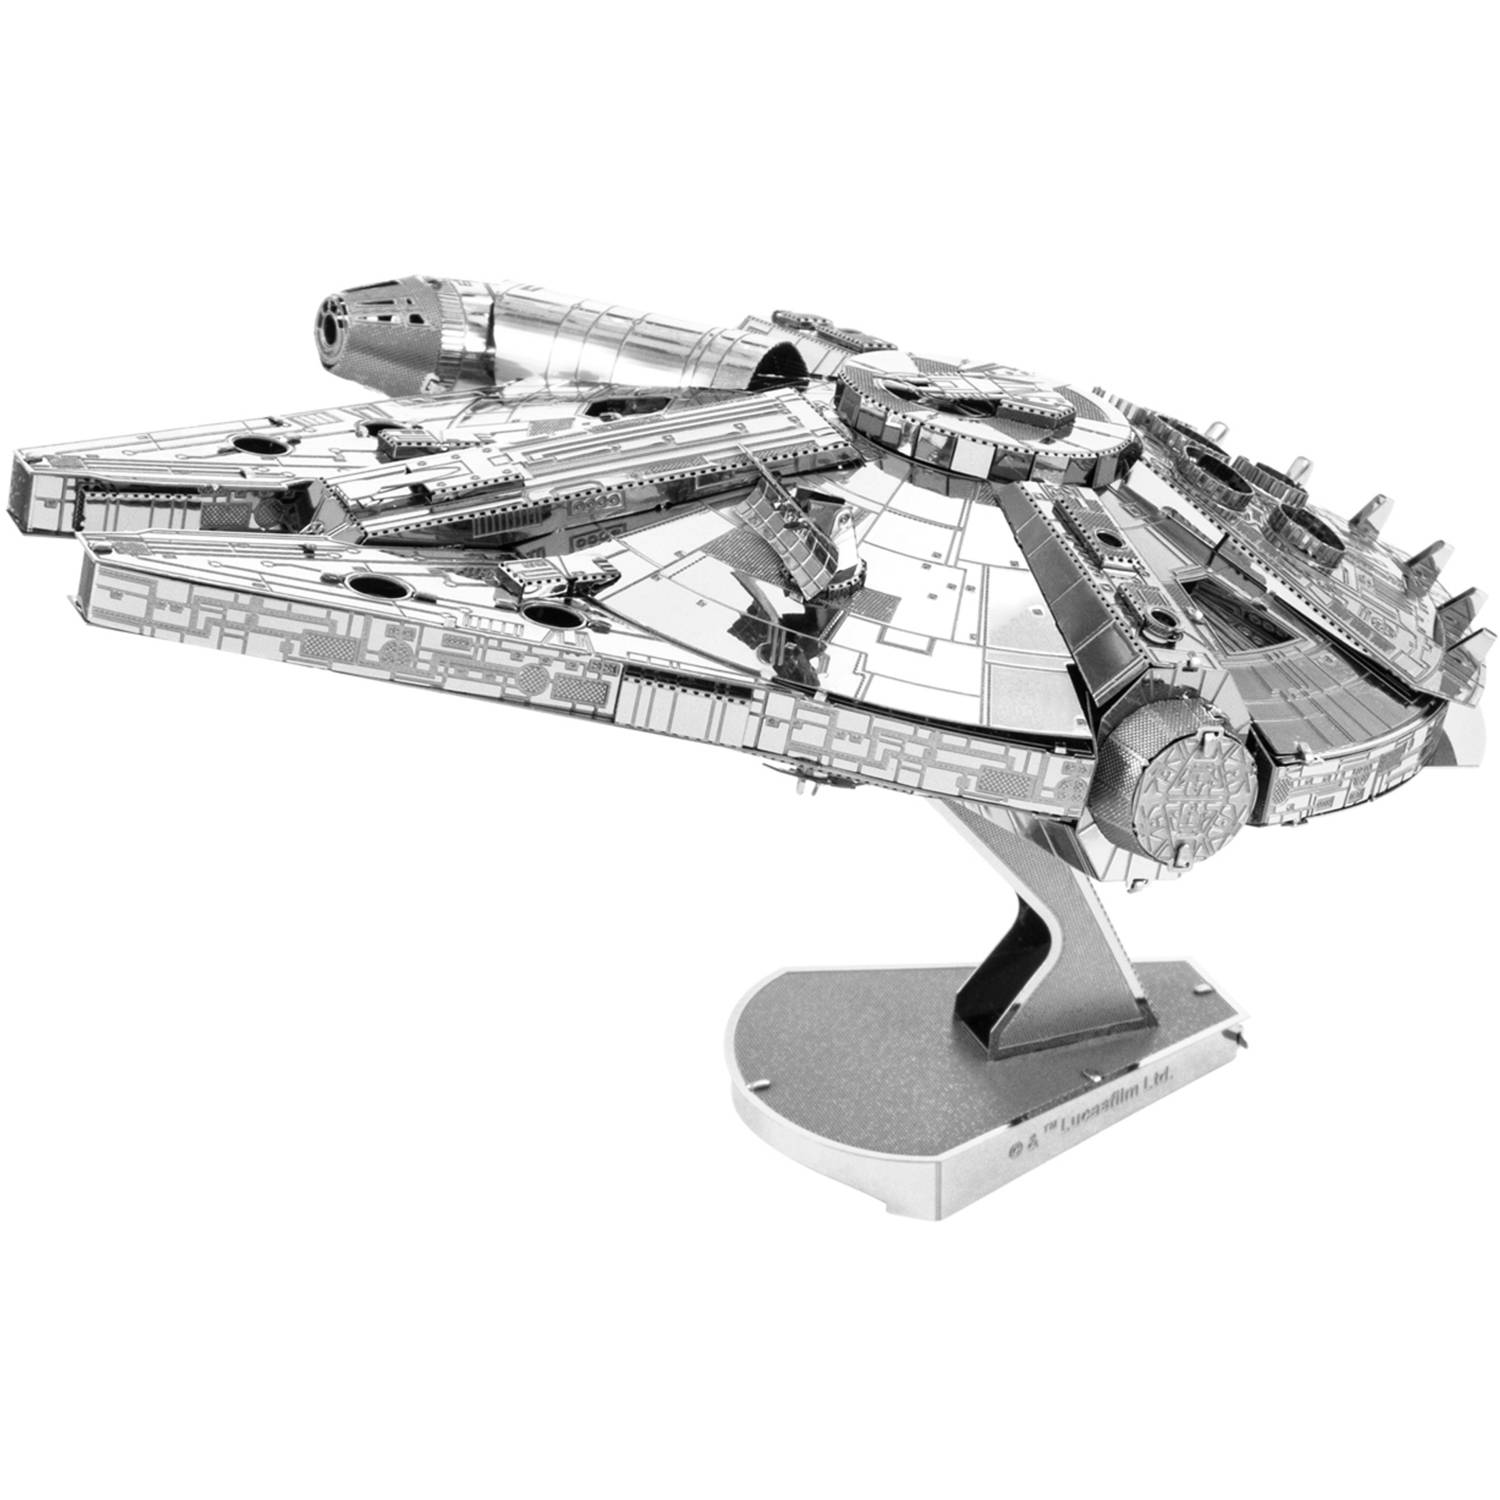 ICONX 3D Metal Model Kit, Large Millennium Falcon by Fascinations